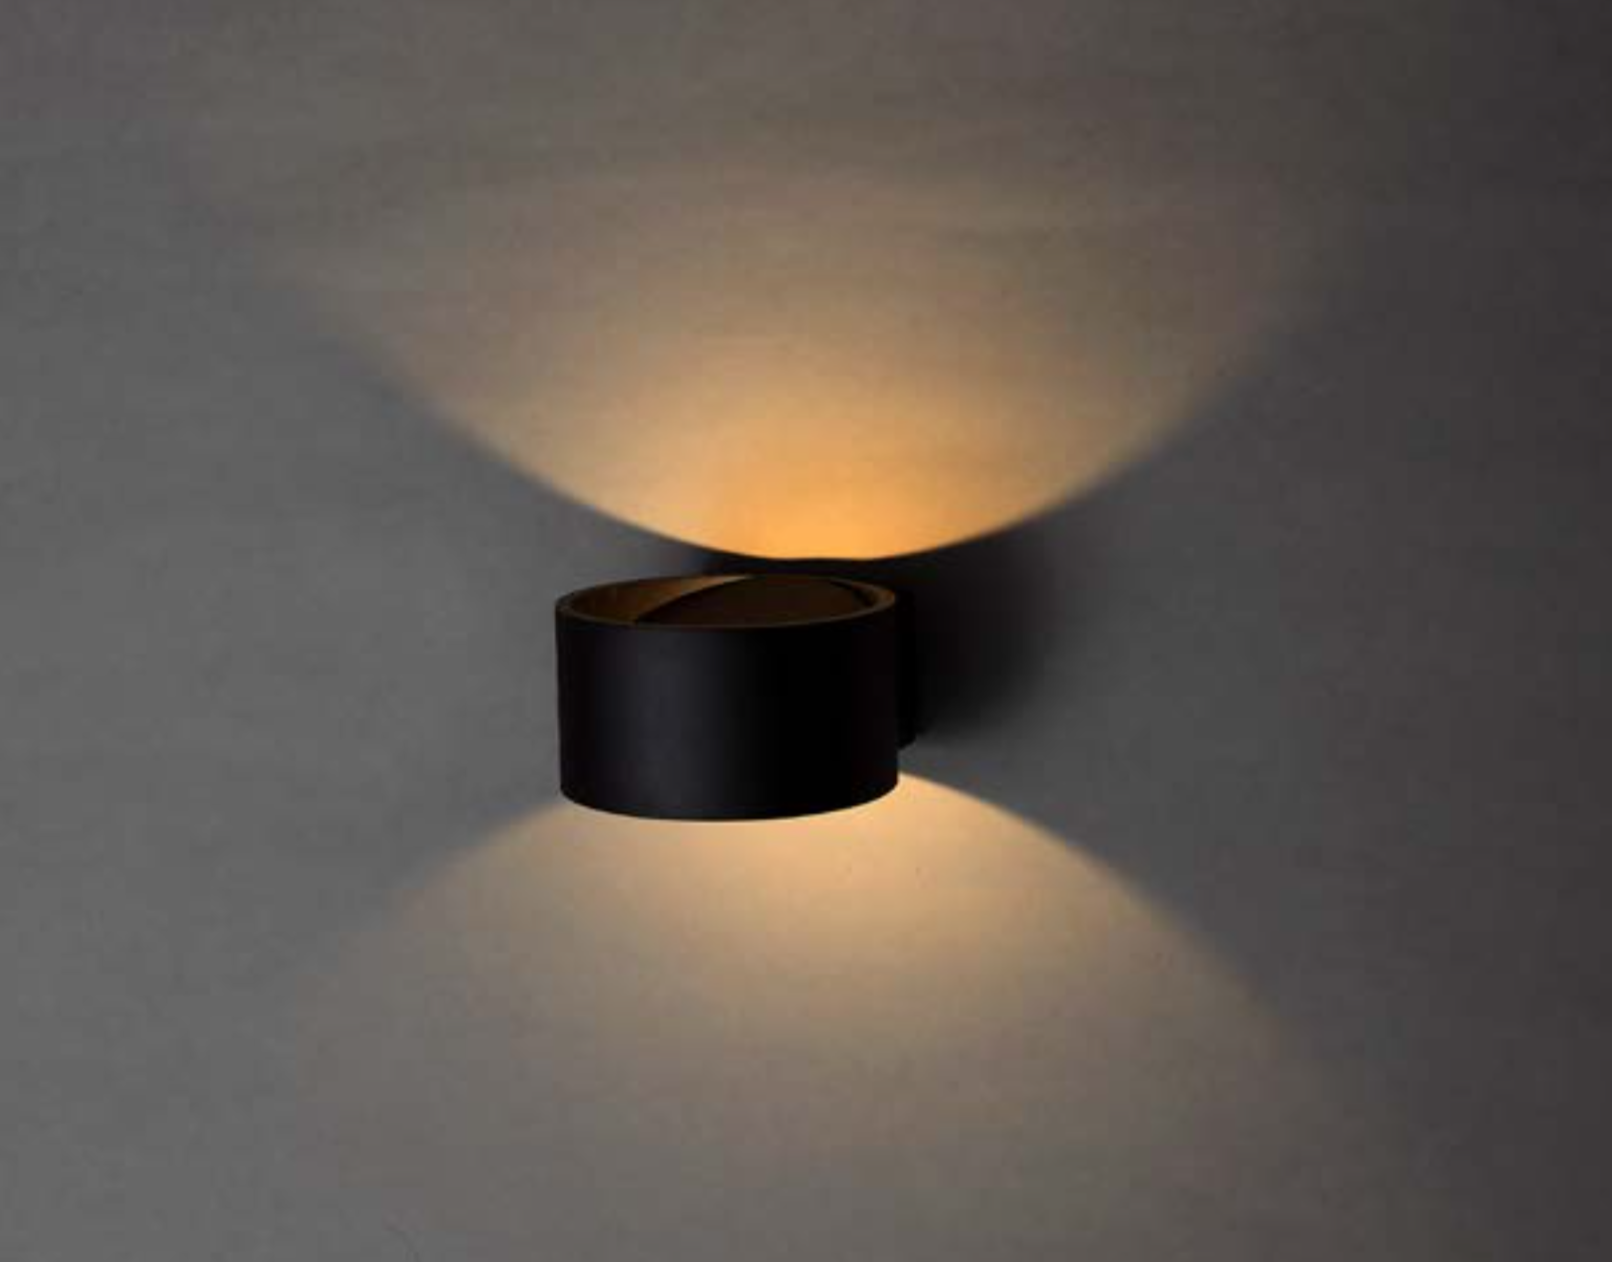 indirect wall lighting. An Indirect Wall Light In Die-cast Aluminium With Dimmable, Dual Emission LED Source. Its Compact Size Makes It Ideal As A Bedside Or Lighting